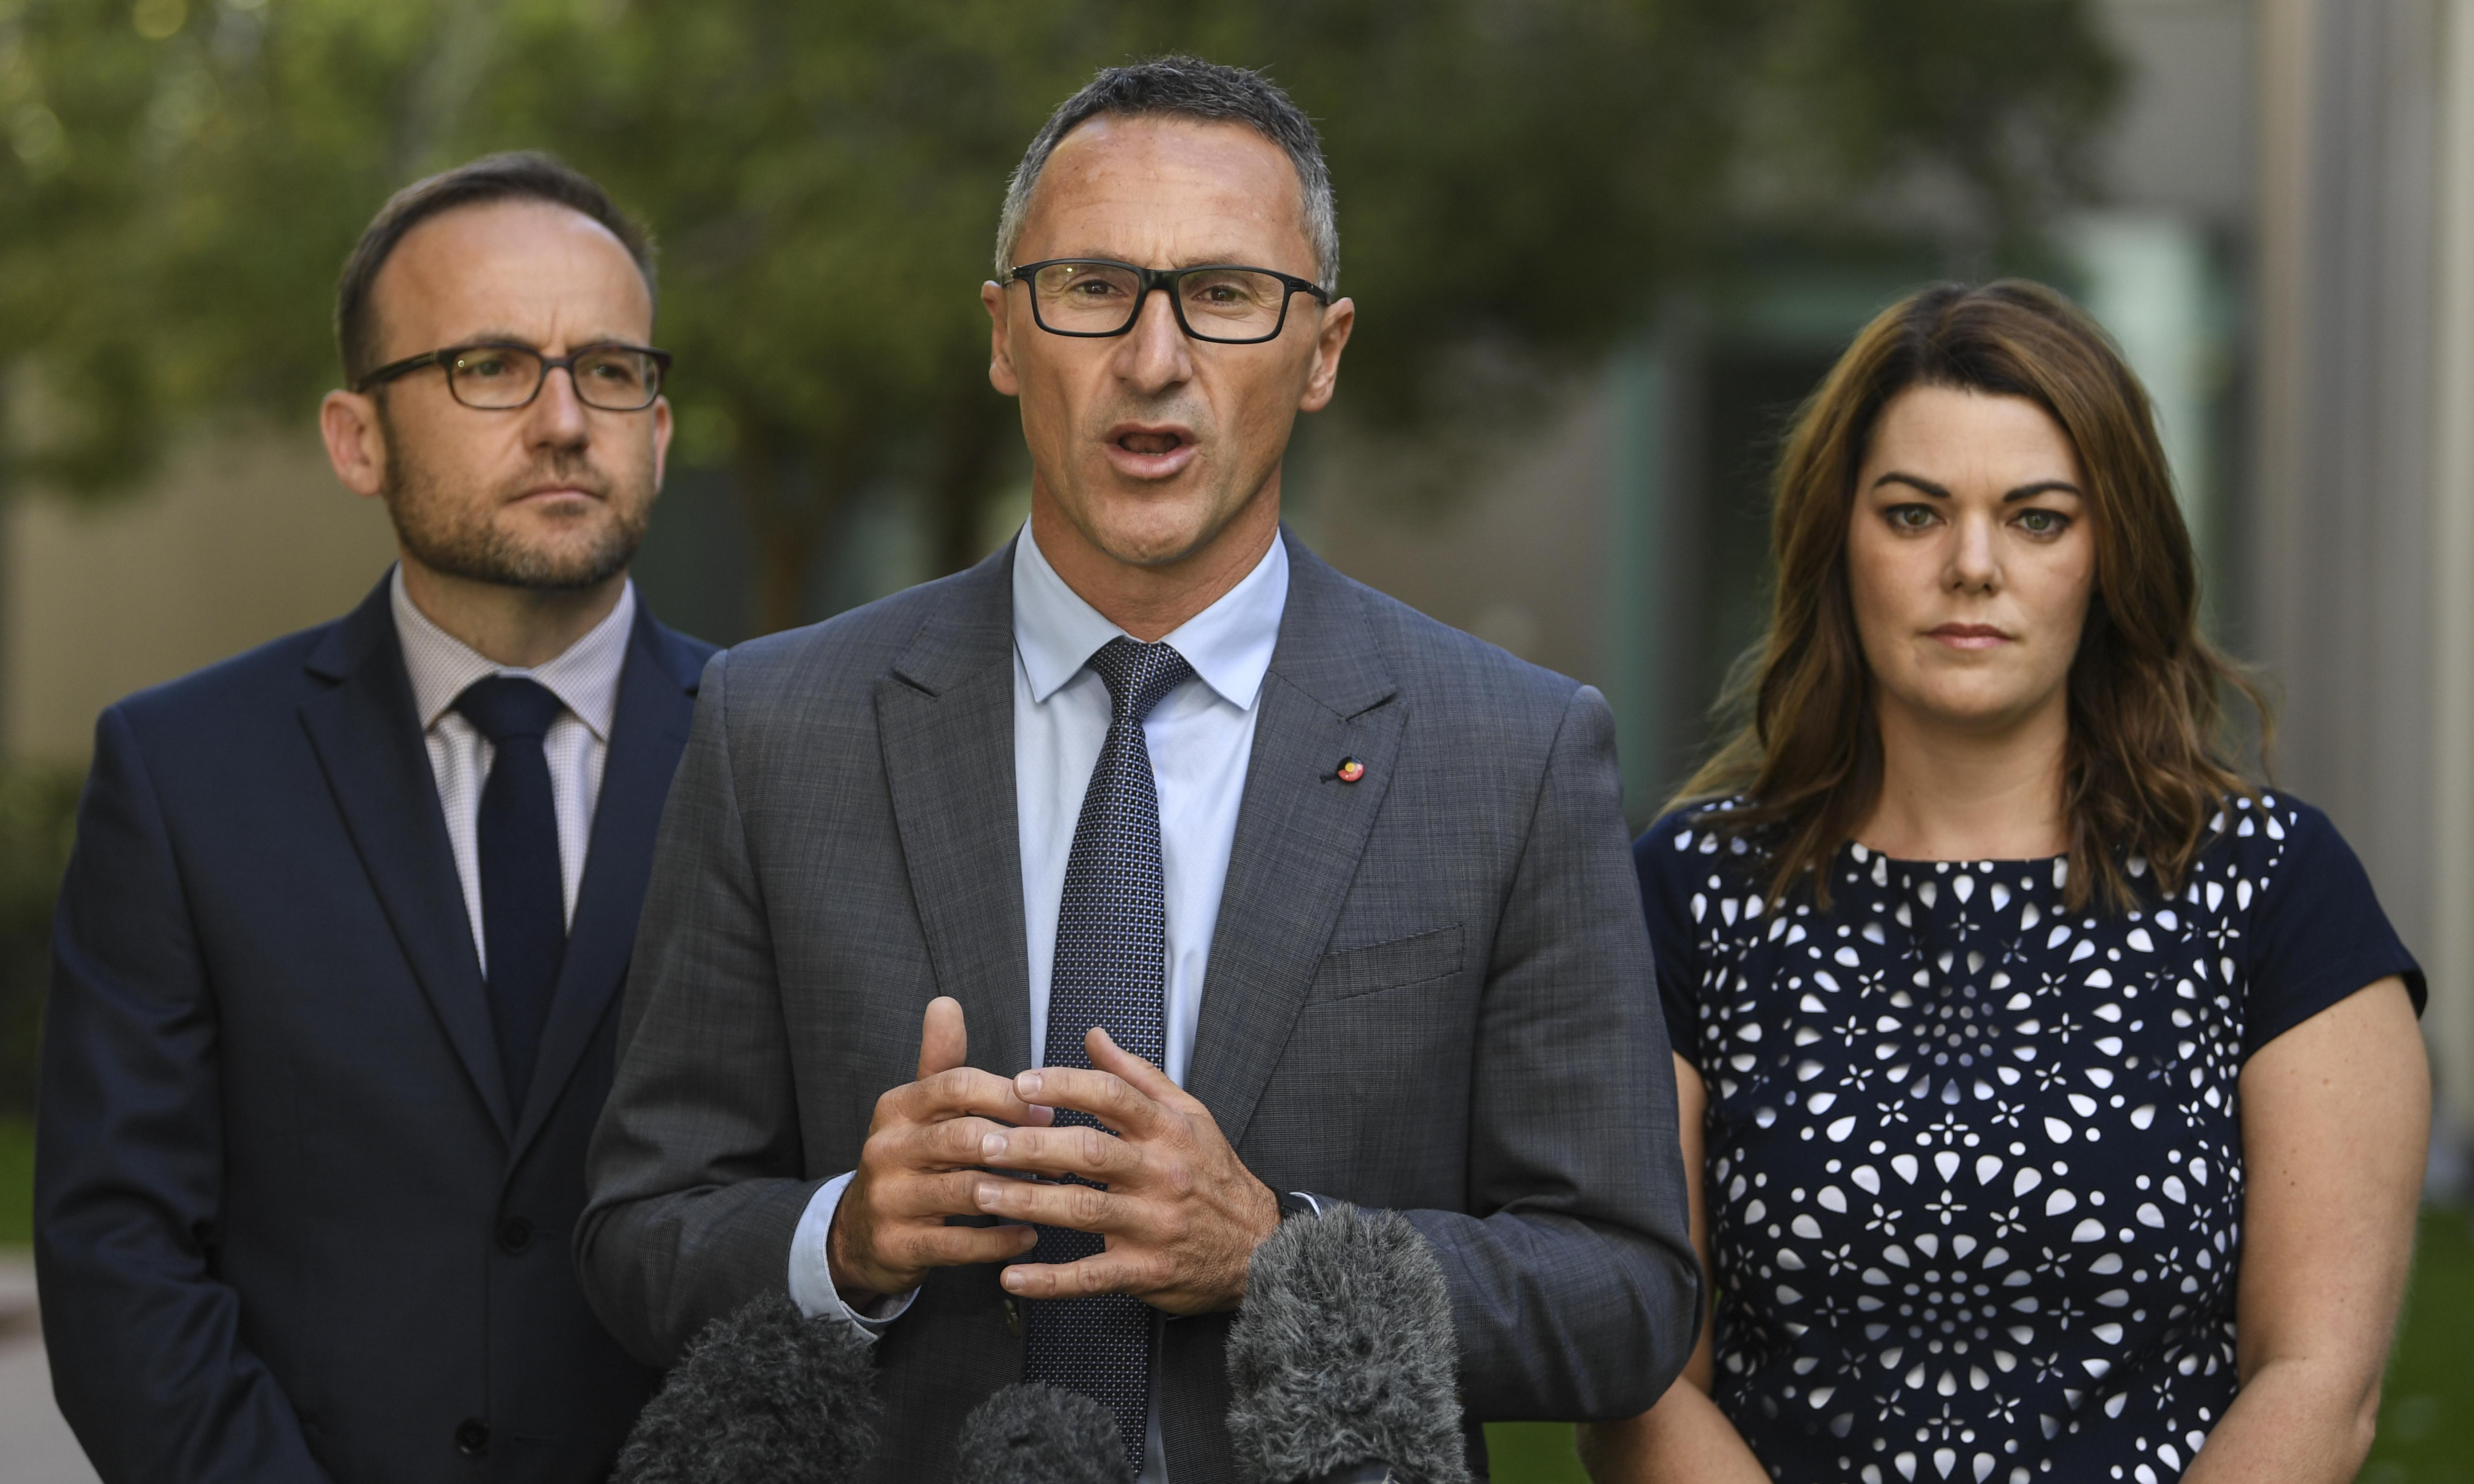 Greens propose supporting Labor climate policy in environment deal